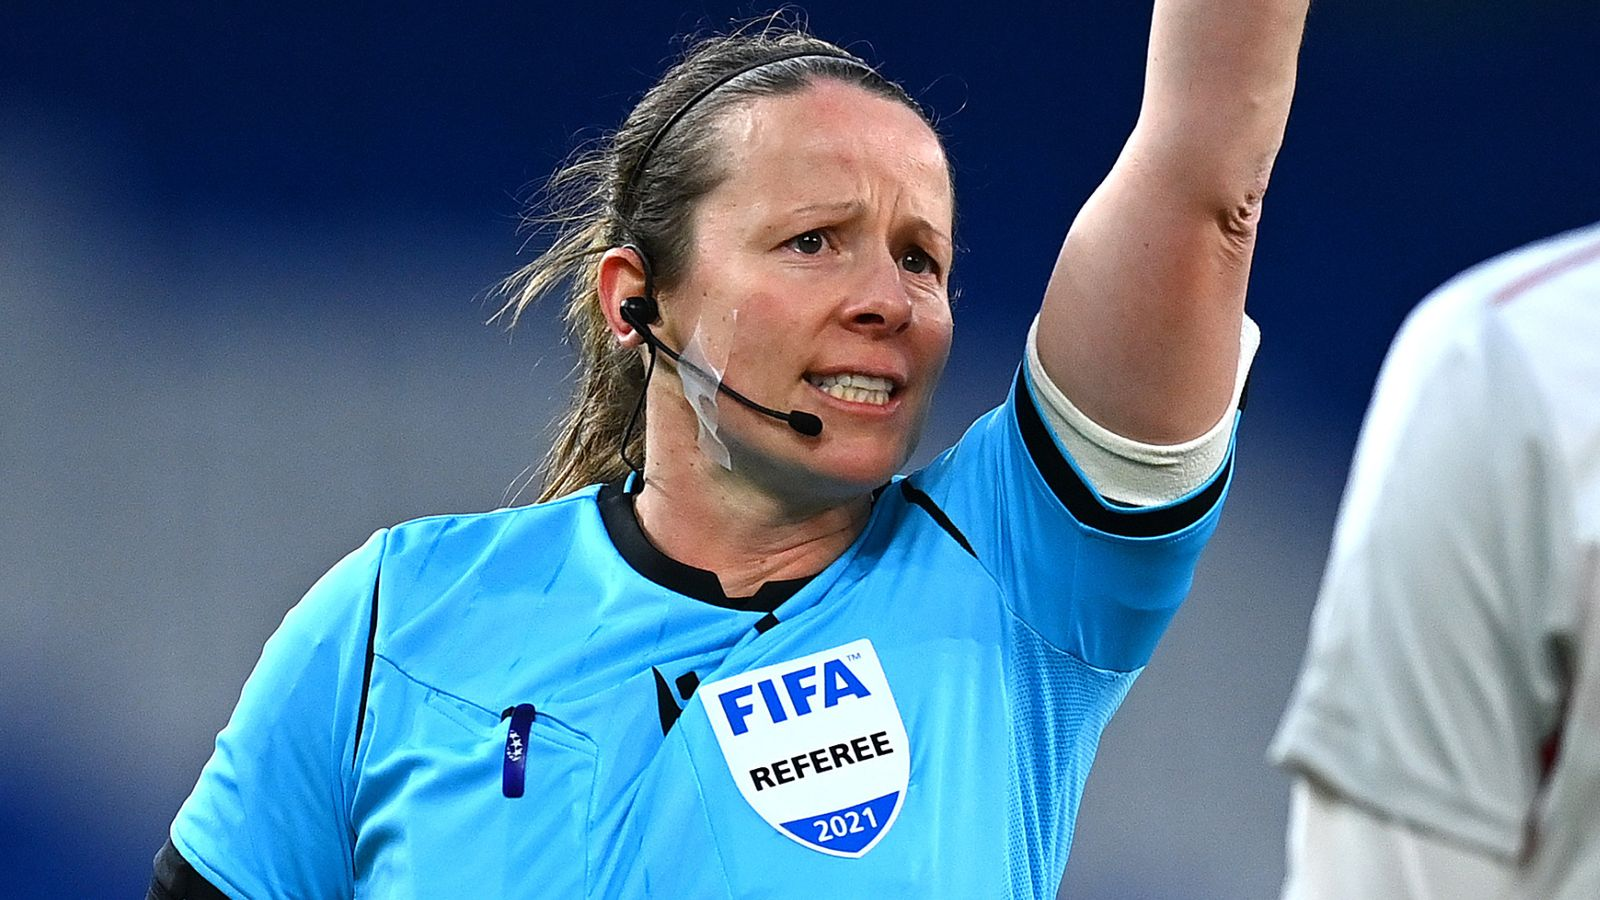 WSL referee Stacey Pearson thanks football community for supporting petition on funded IVF for same-sex couples